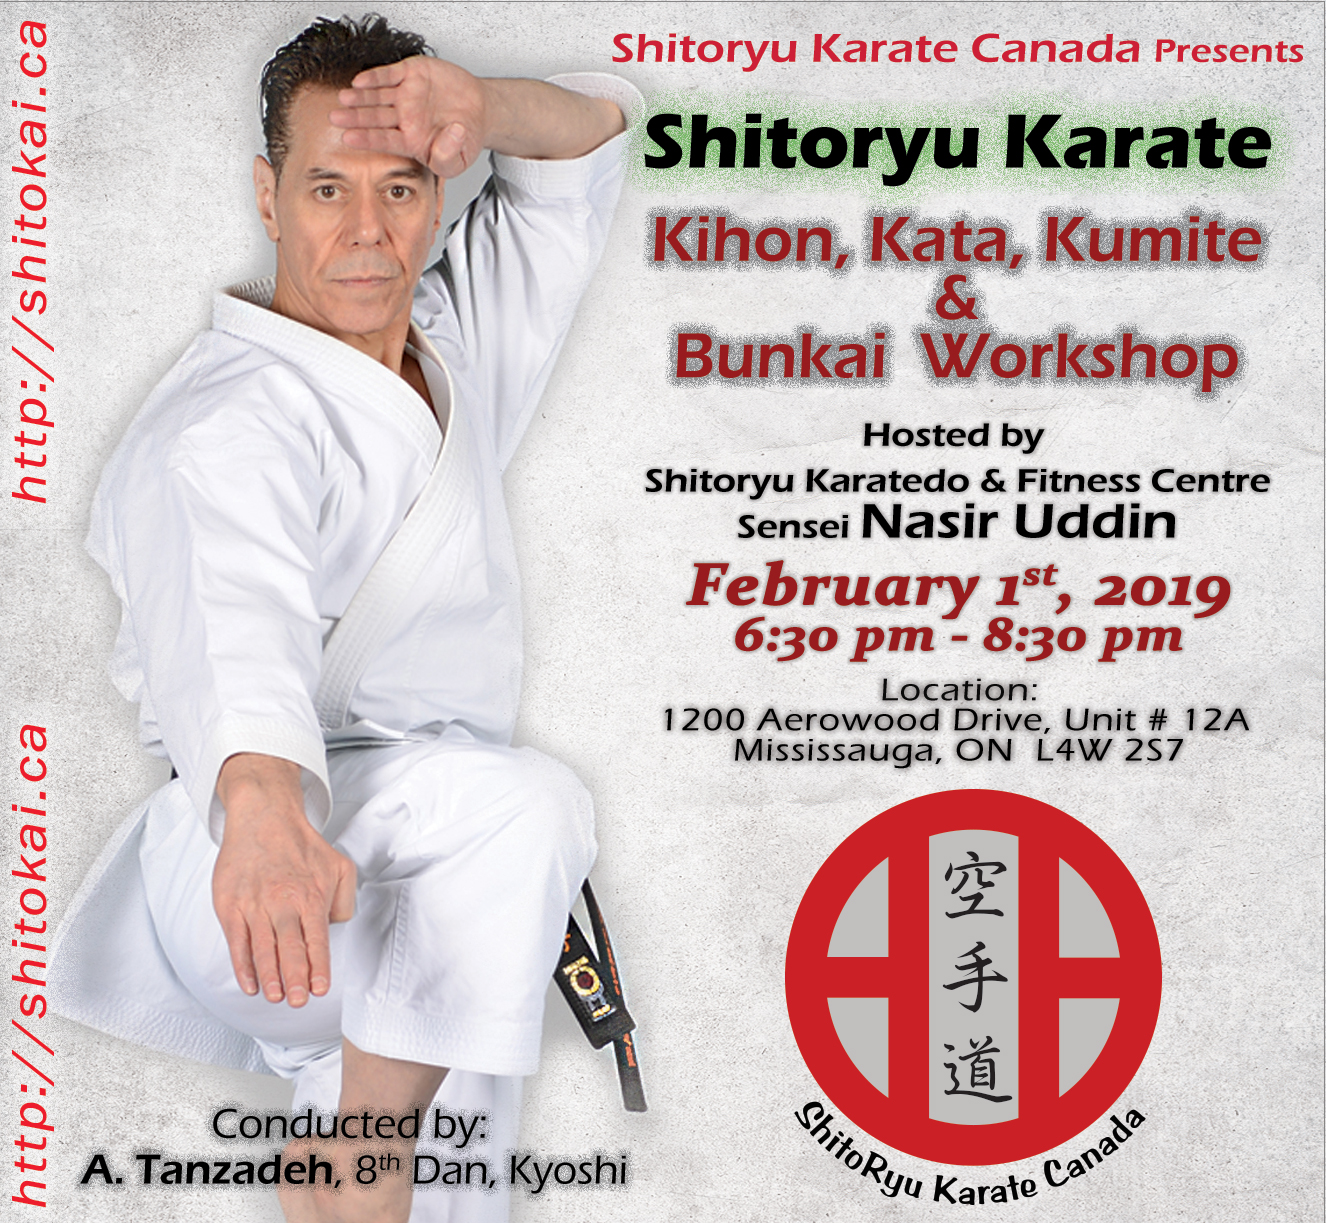 Kyoshi A.Tanzadeh Shitoryu Karate 8th Dan technical seminar